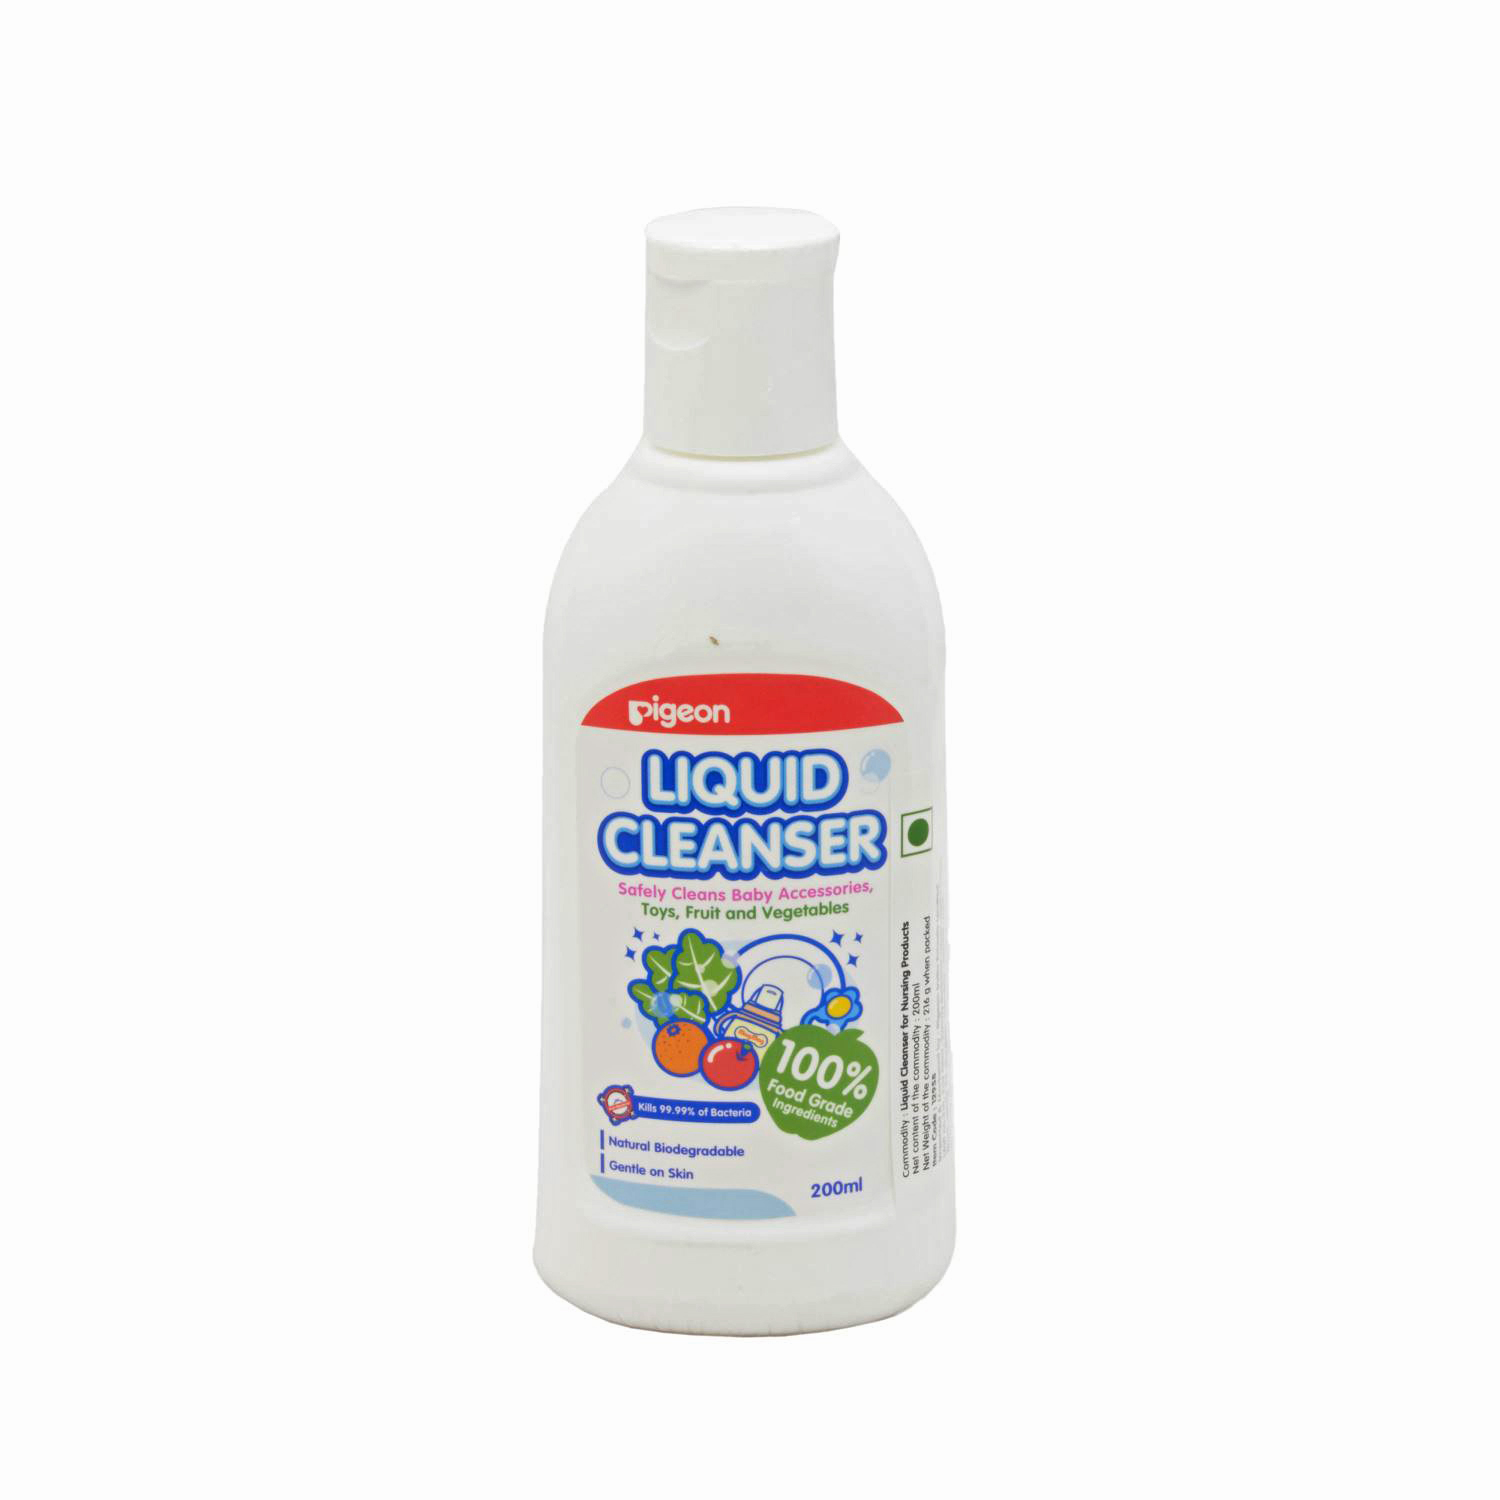 Pigeon Liquid Cleanser - 200 ml